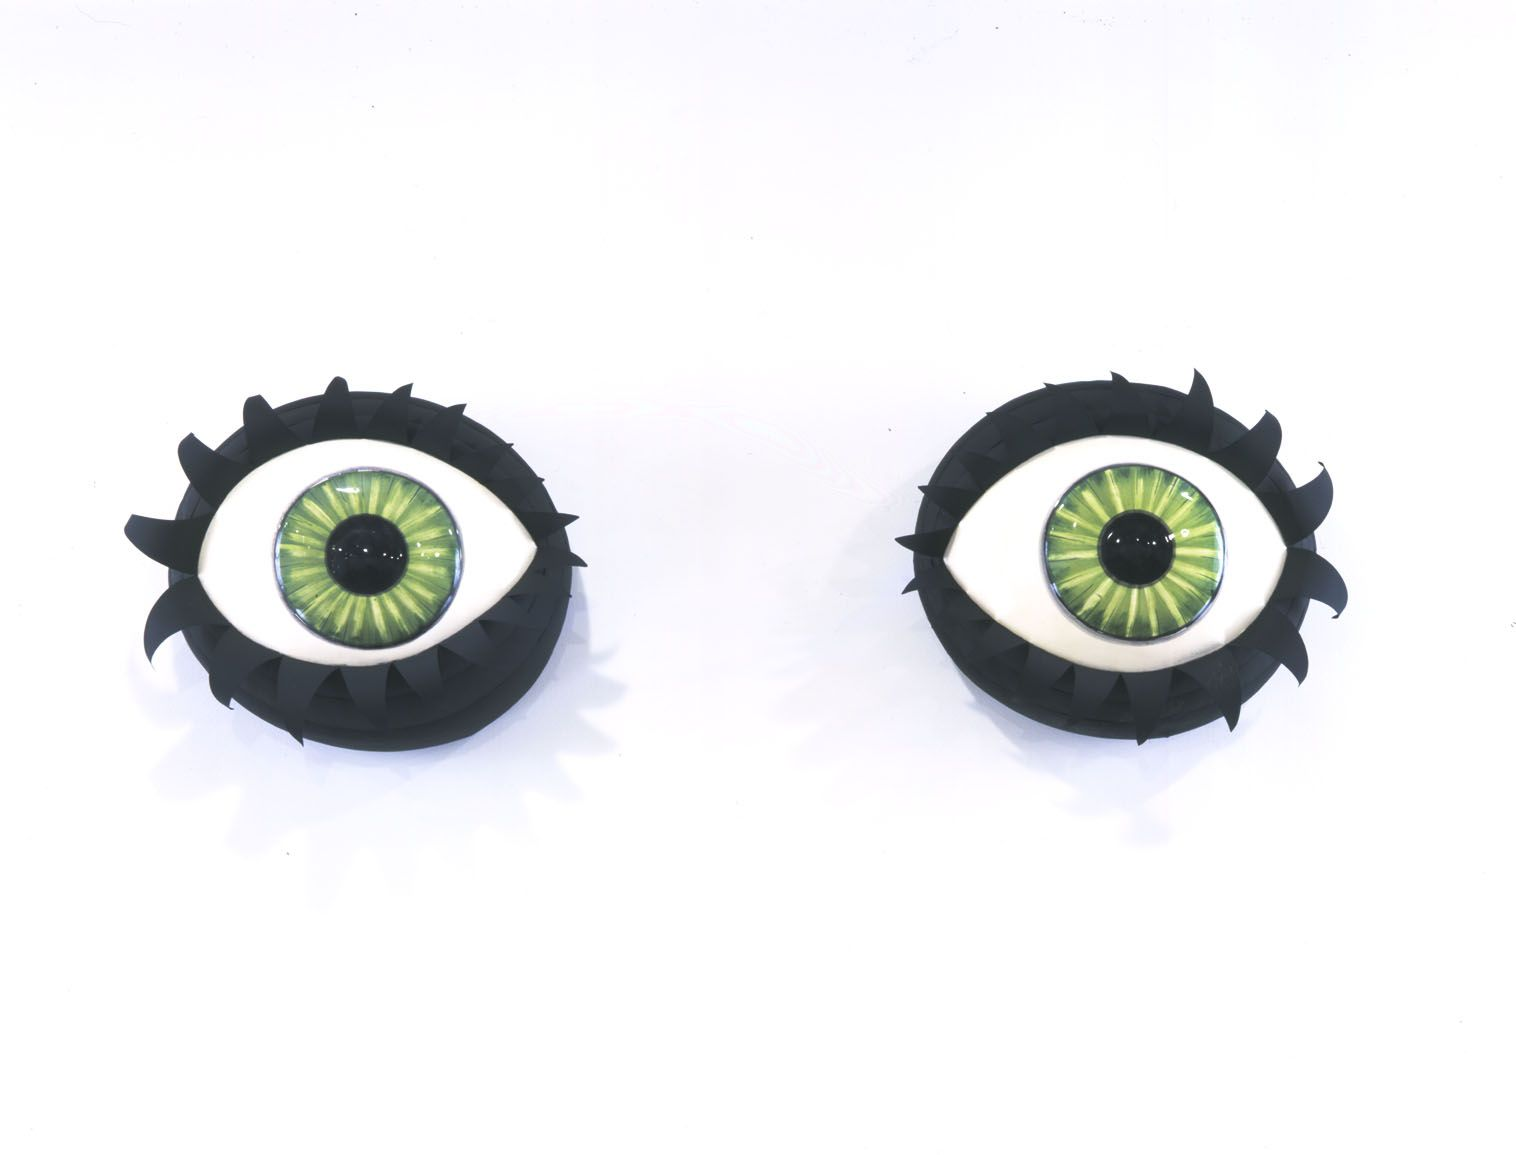 Eyes Without a Face (green), 2003, Ceramic, tin, spraypaint